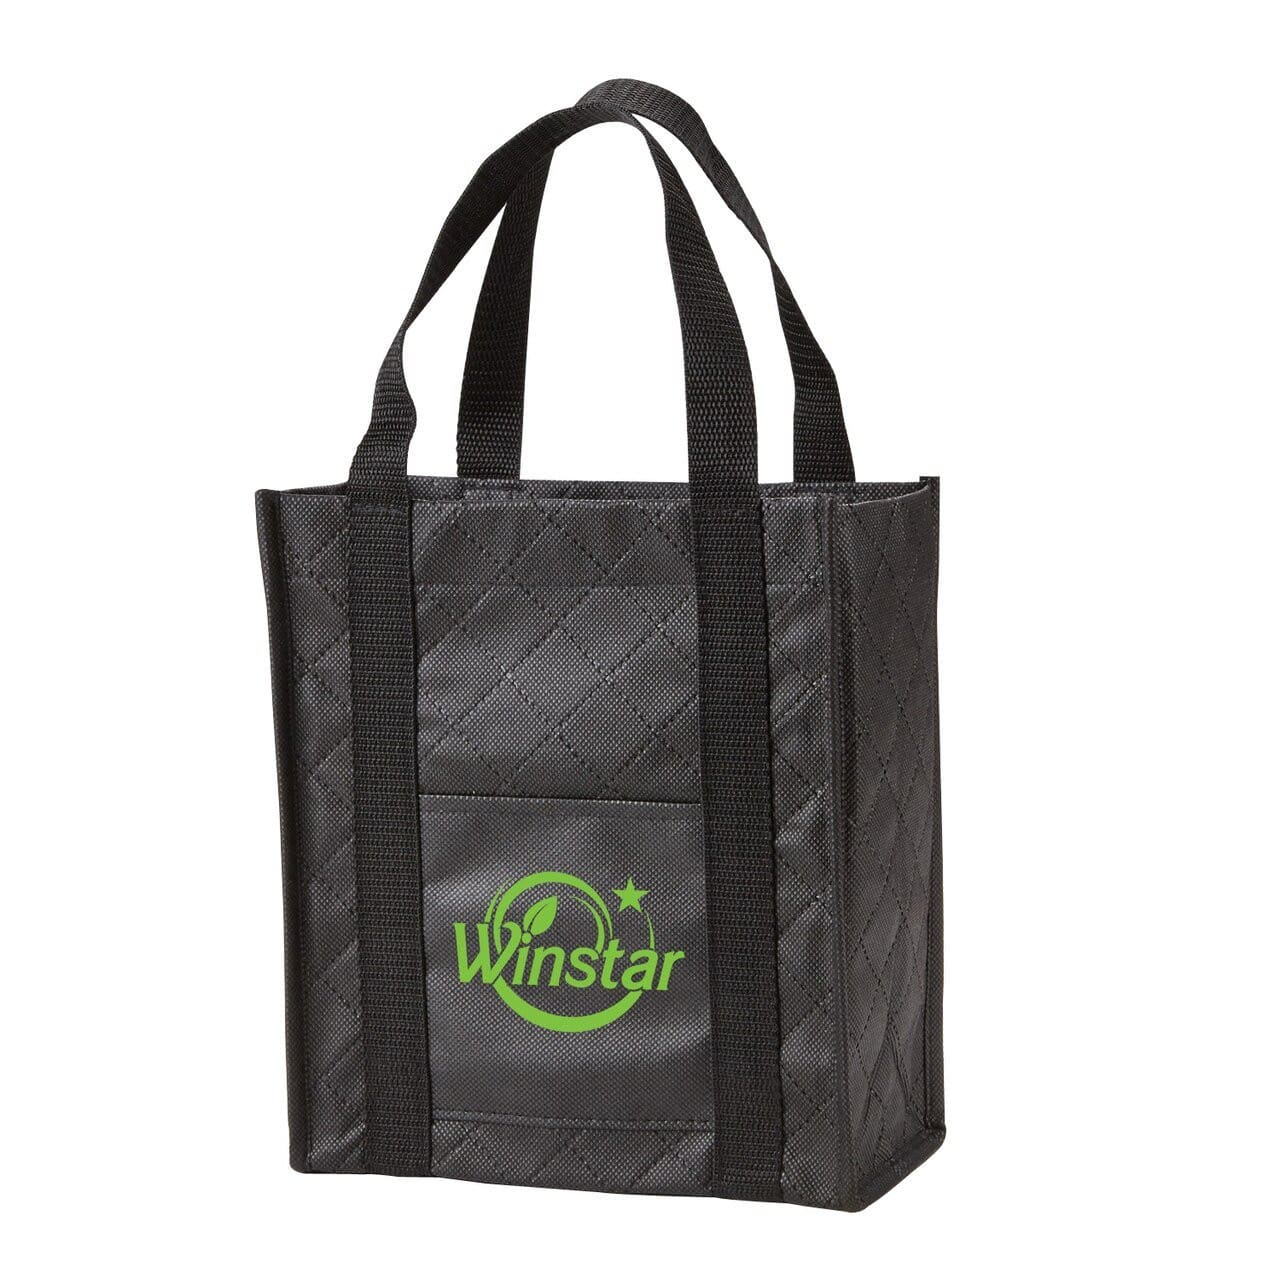 Quilted Non-Woven Gift Tote - Black:9818.preview.jpg